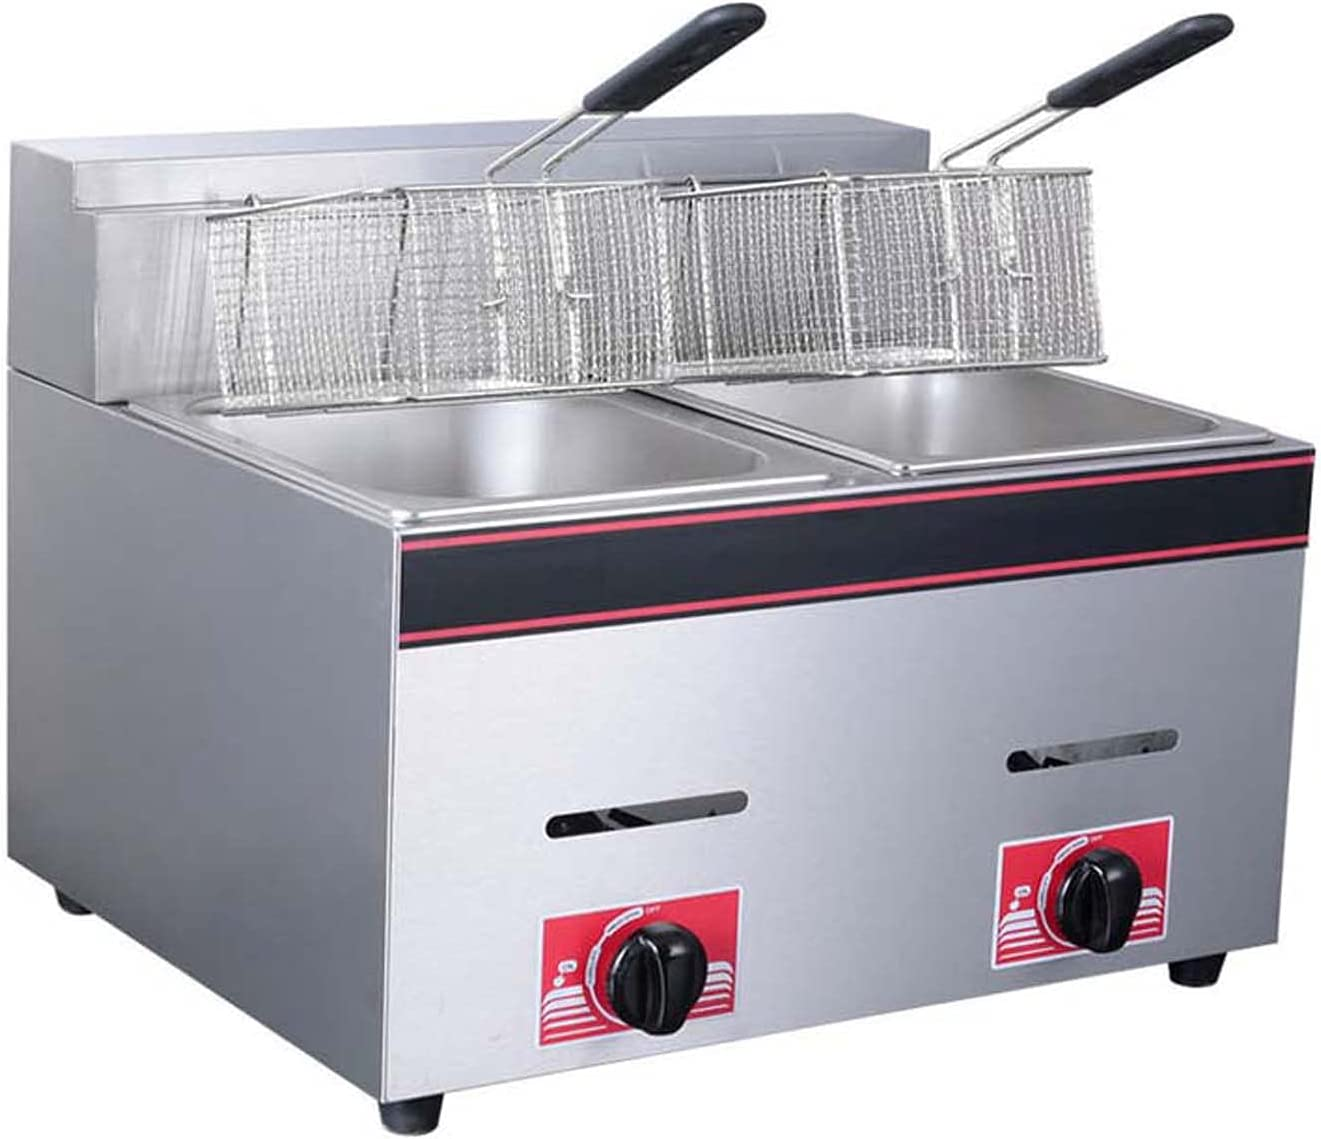 Wgwioo Gas Deep Fryer, Commercial Frying Pan French Fries Machine Fryer, Stainless Steel French Fry Double Tank Fast Fryer with 2 Baskets